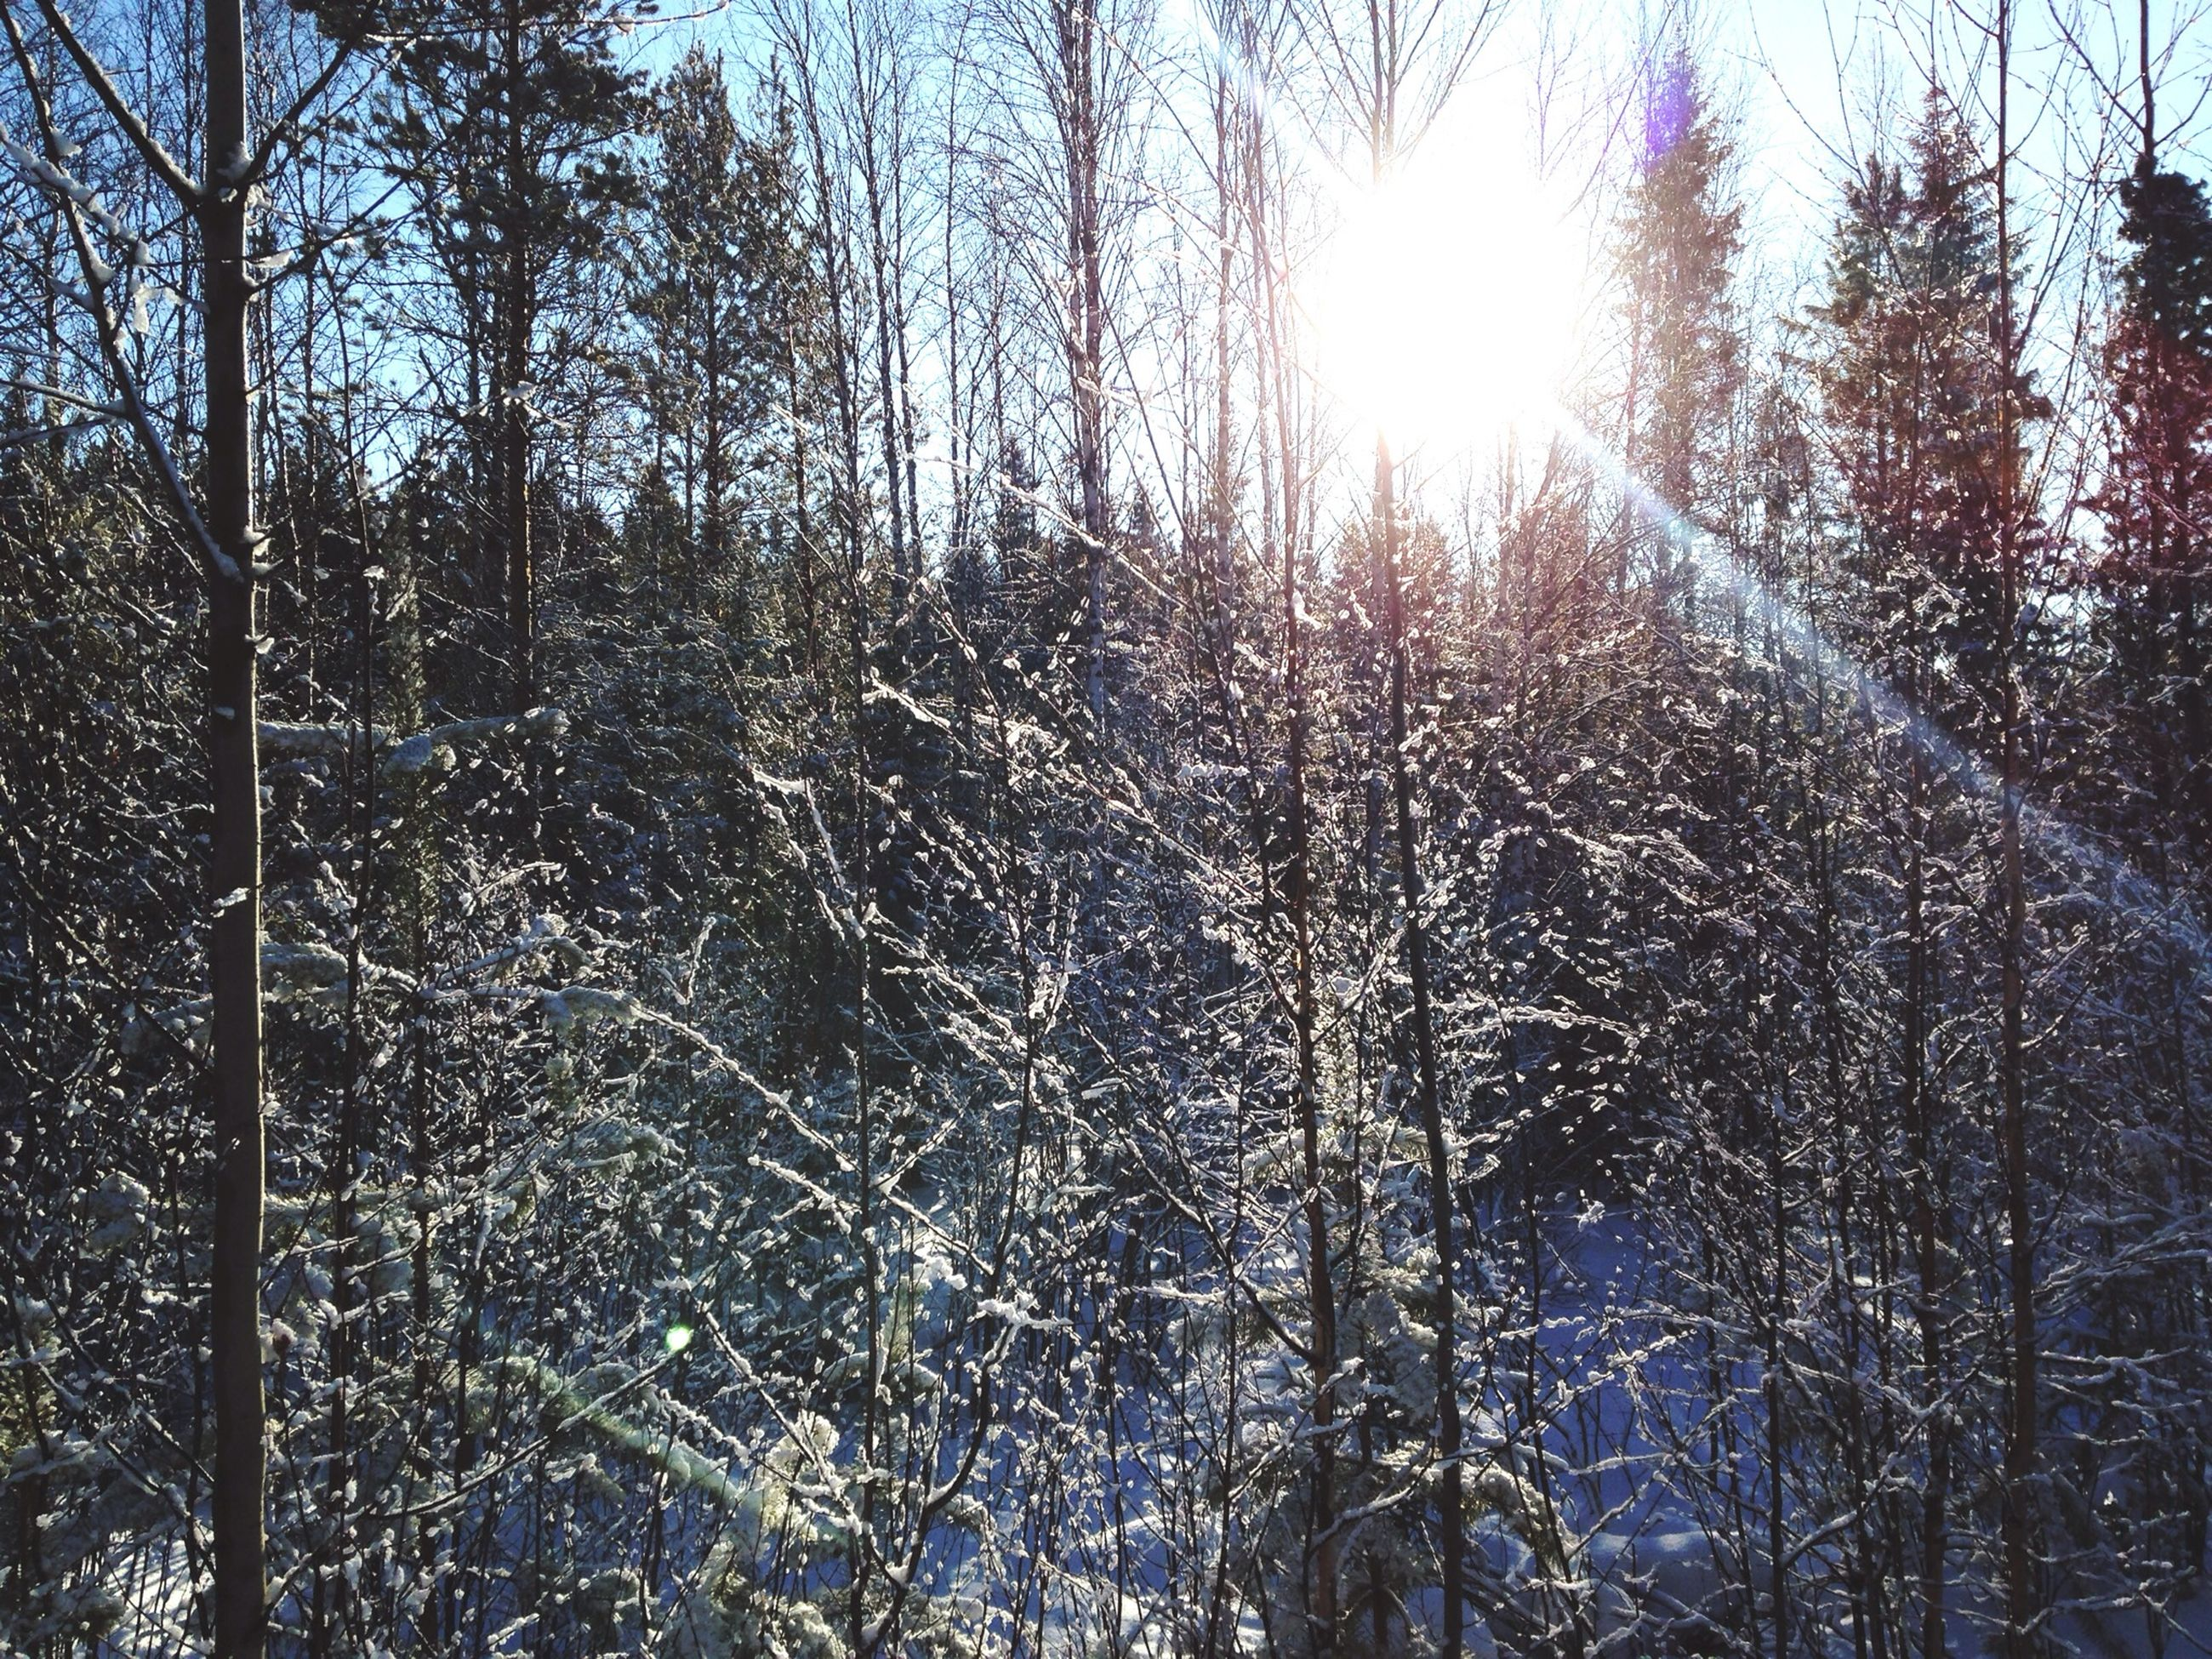 tree, bare tree, sun, winter, lens flare, sunlight, nature, branch, sunbeam, low angle view, tranquility, cold temperature, clear sky, growth, snow, beauty in nature, outdoors, sky, day, season